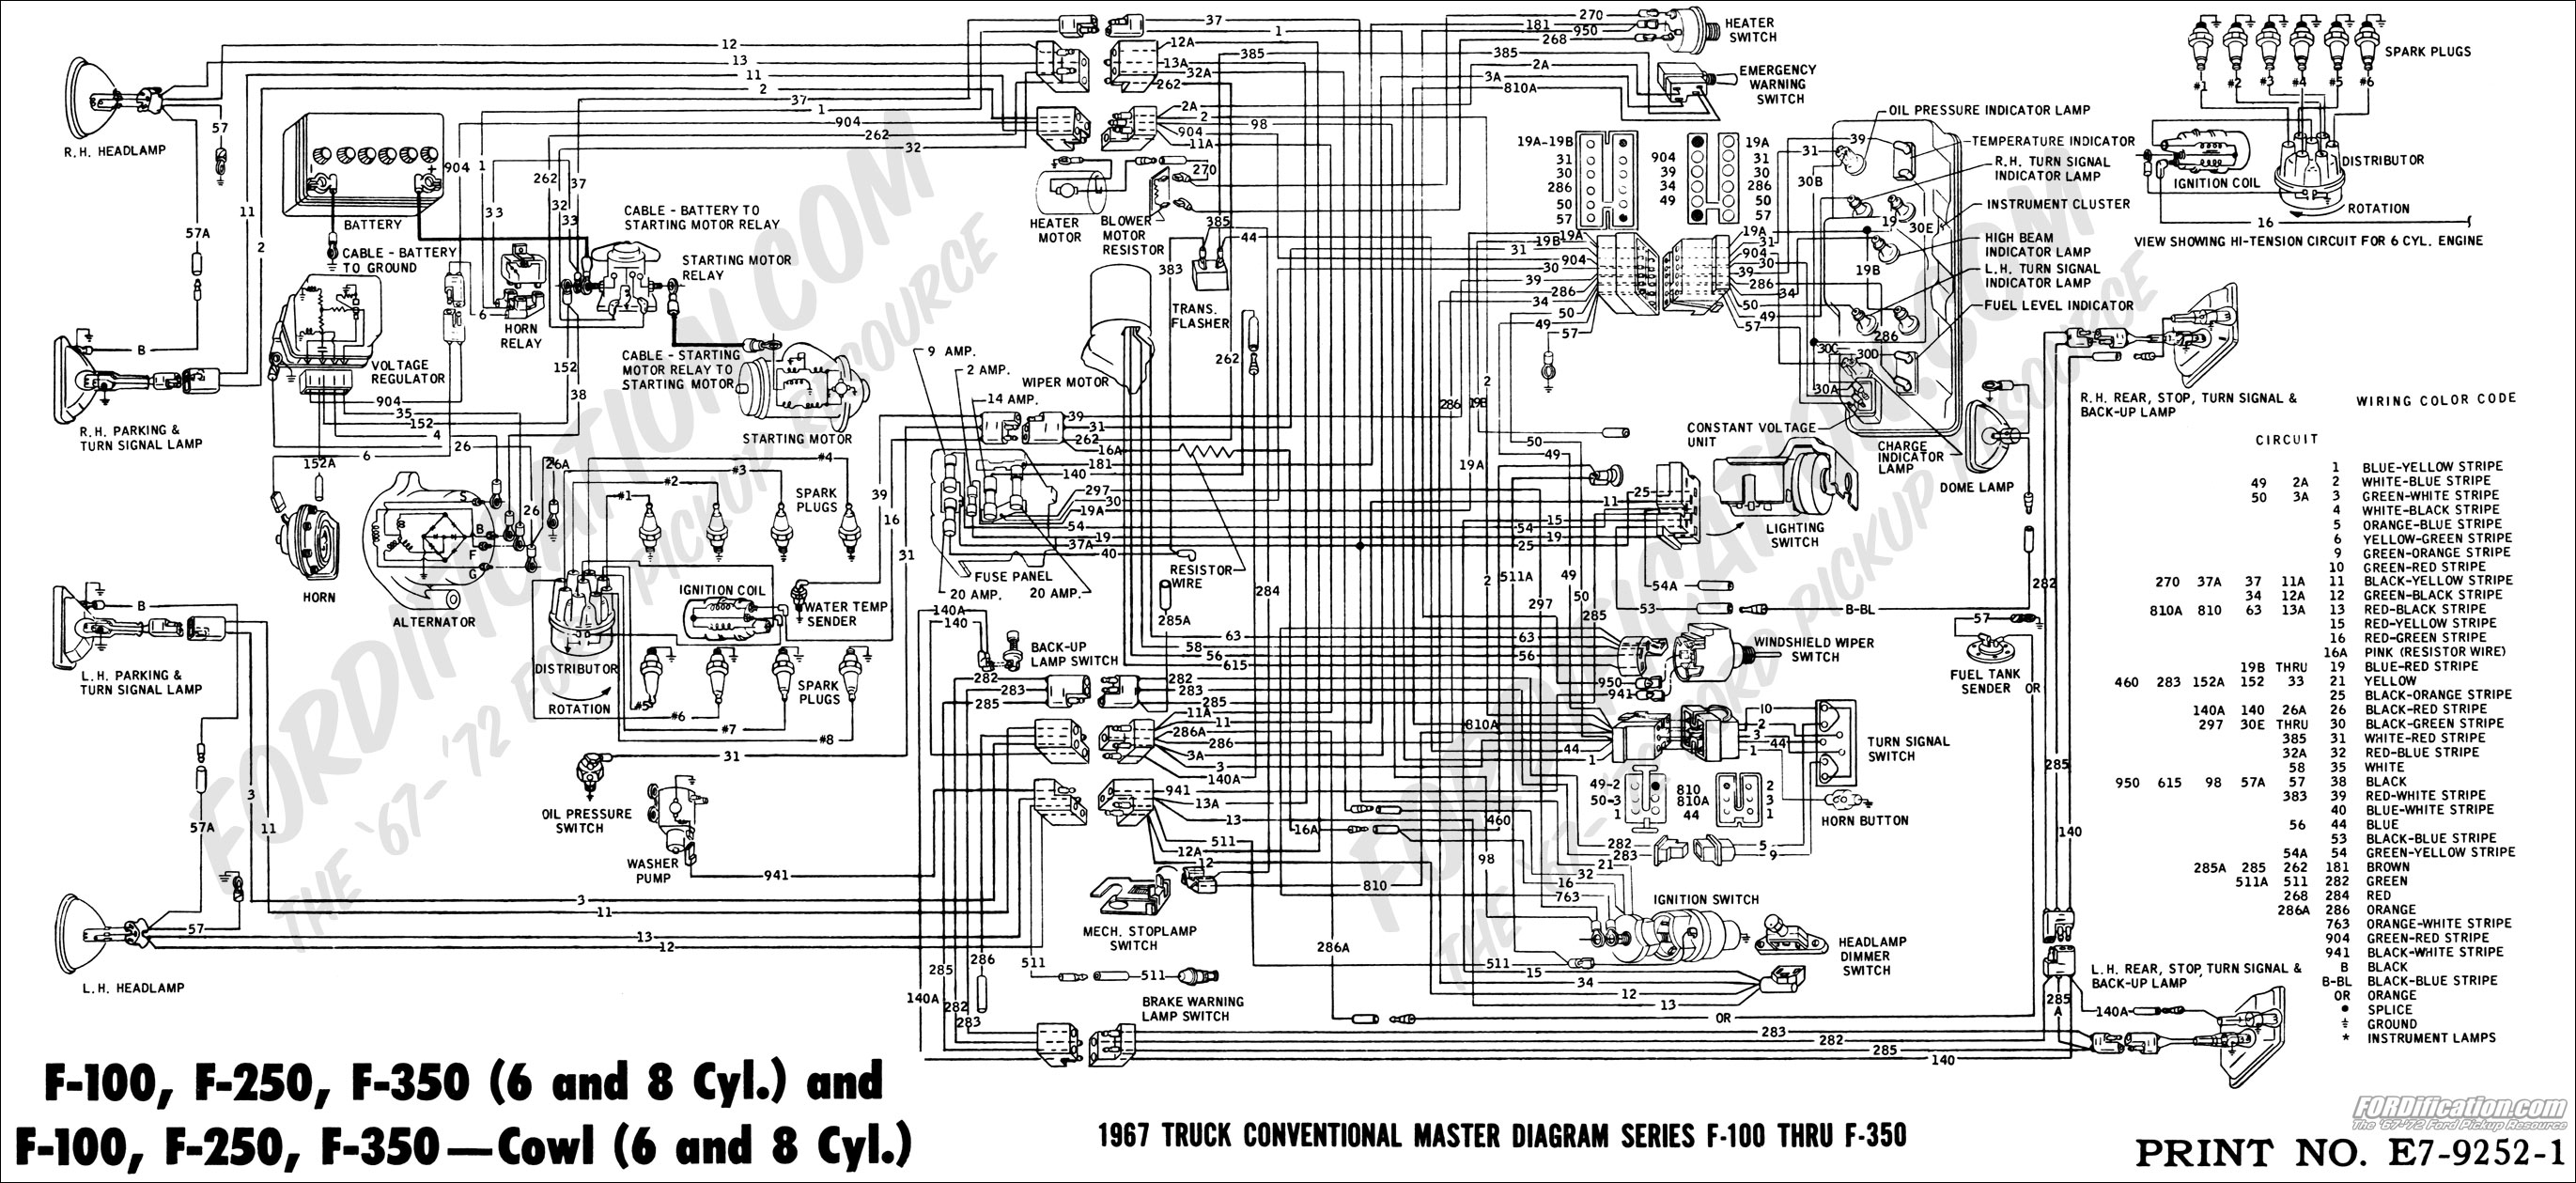 67masterdiagram 93 ford f 350 trailer wiring diagram wiring diagram simonand 1996 ford f150 wiring diagram at honlapkeszites.co